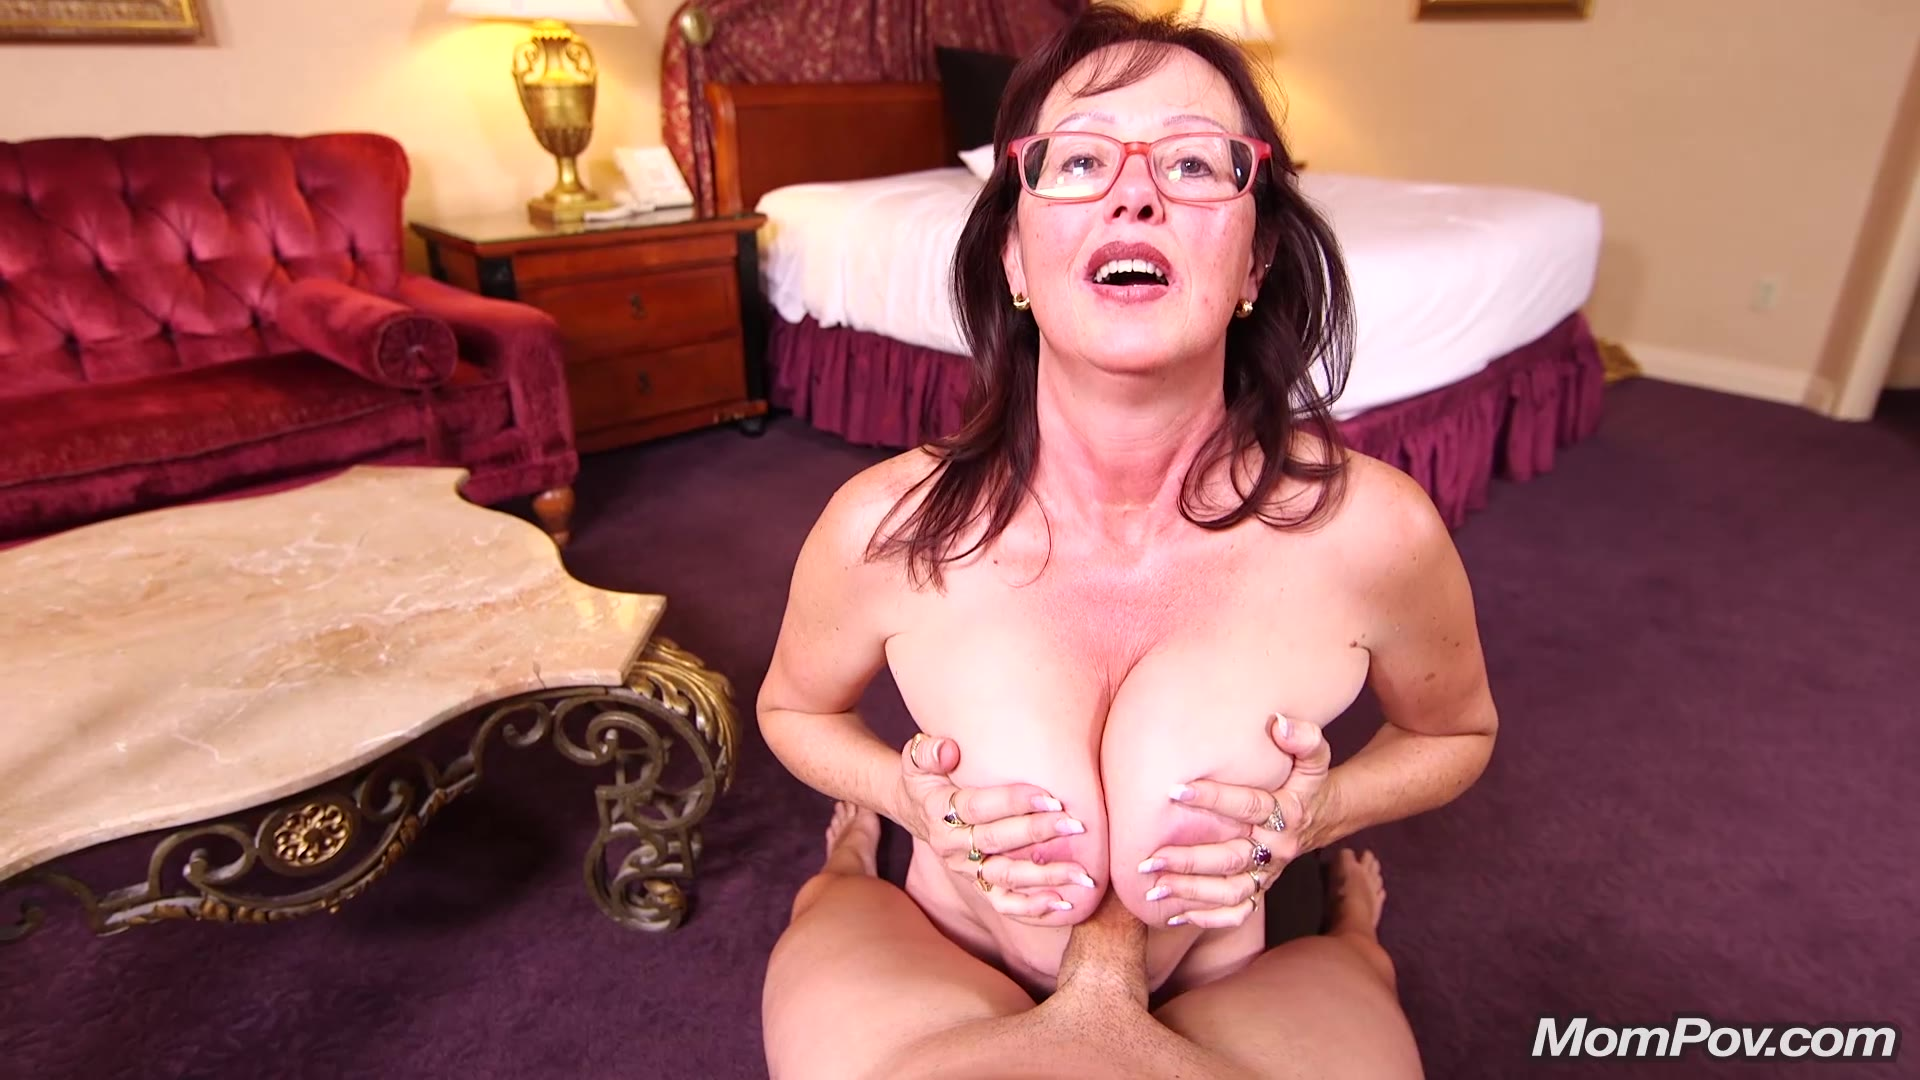 Hd Mom Natural Big Tits